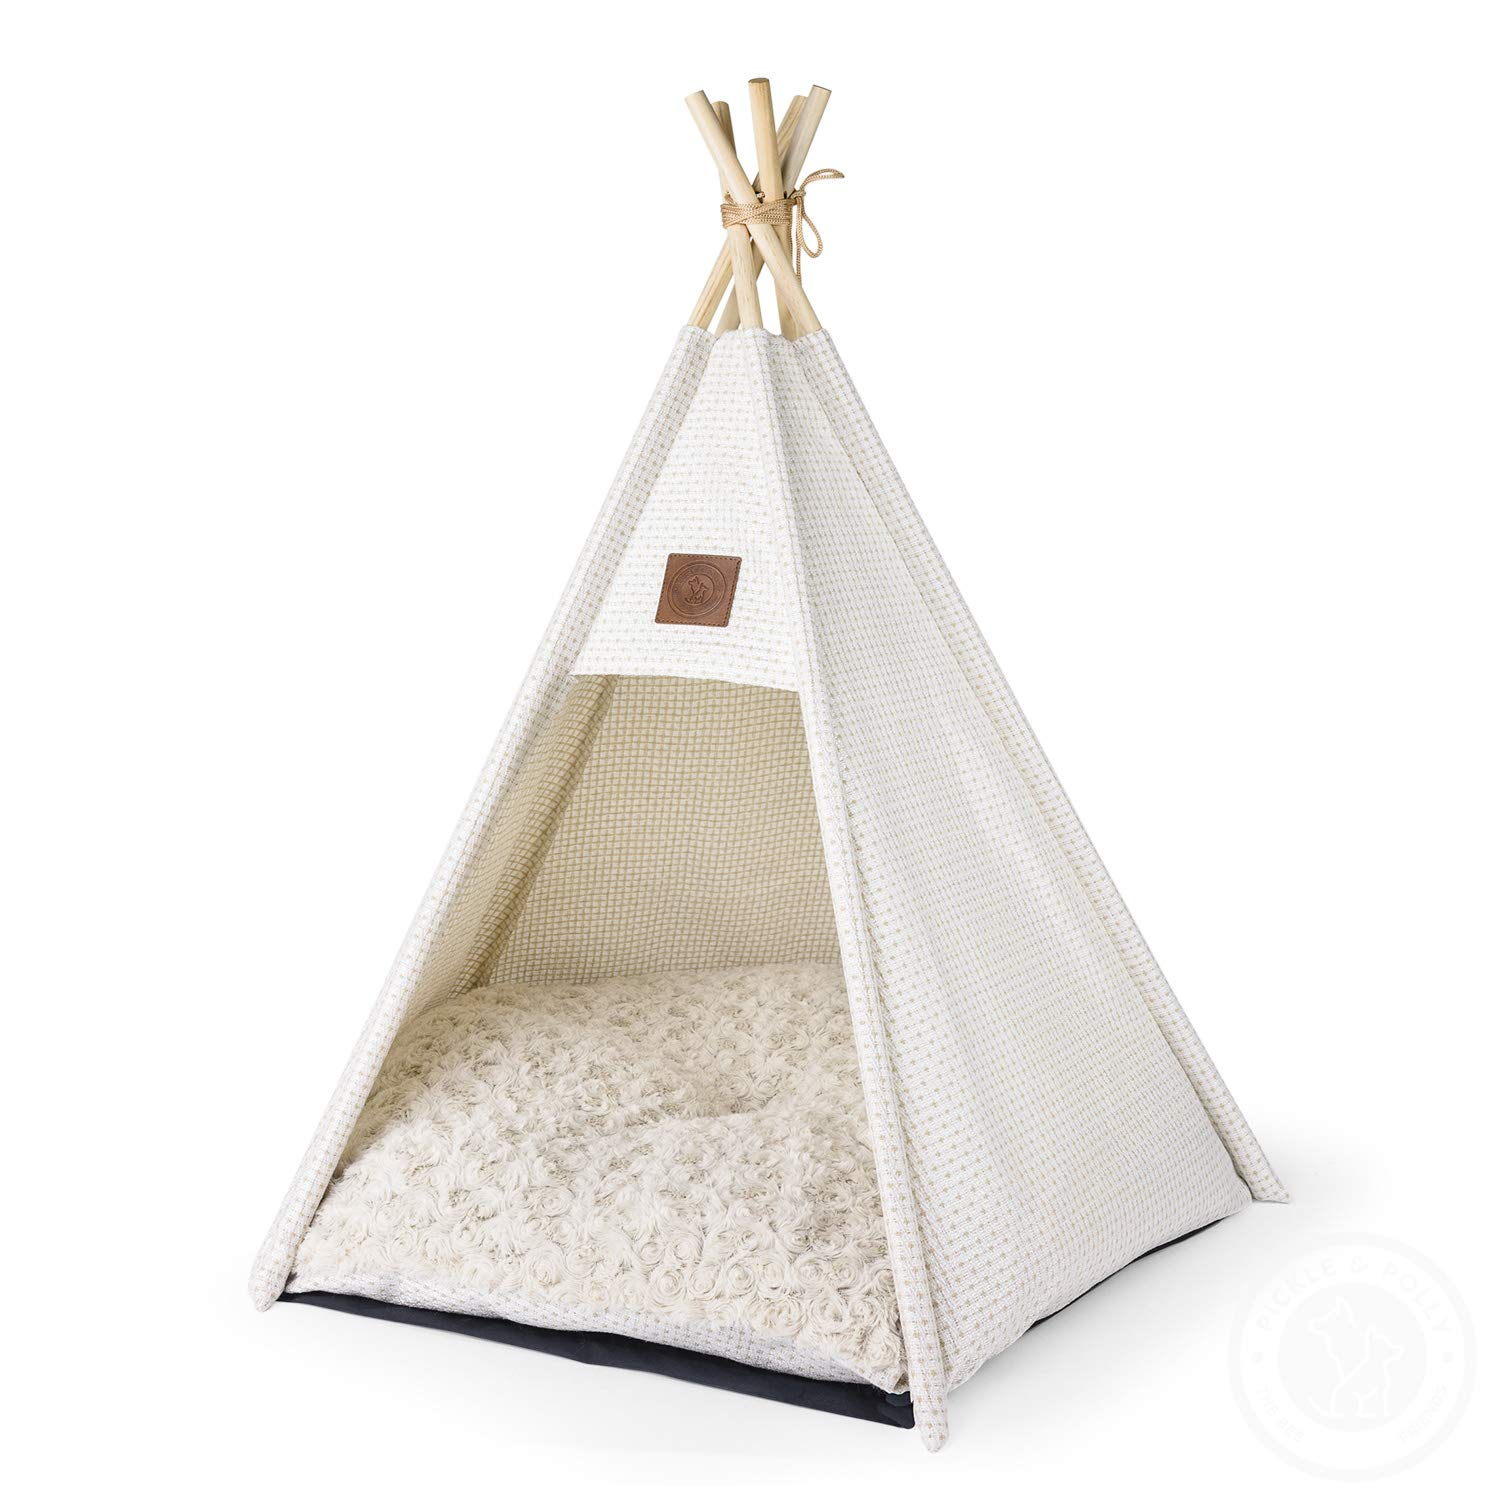 Pickle & Polly - Medium Dog Bed Teepee/Tent for Dogs & Cats - Stylish, Soft, Cozy Dog Bed w/Thick Plush Pad, Durable Fabric & Machine Washable (White) by Pickle & Polly